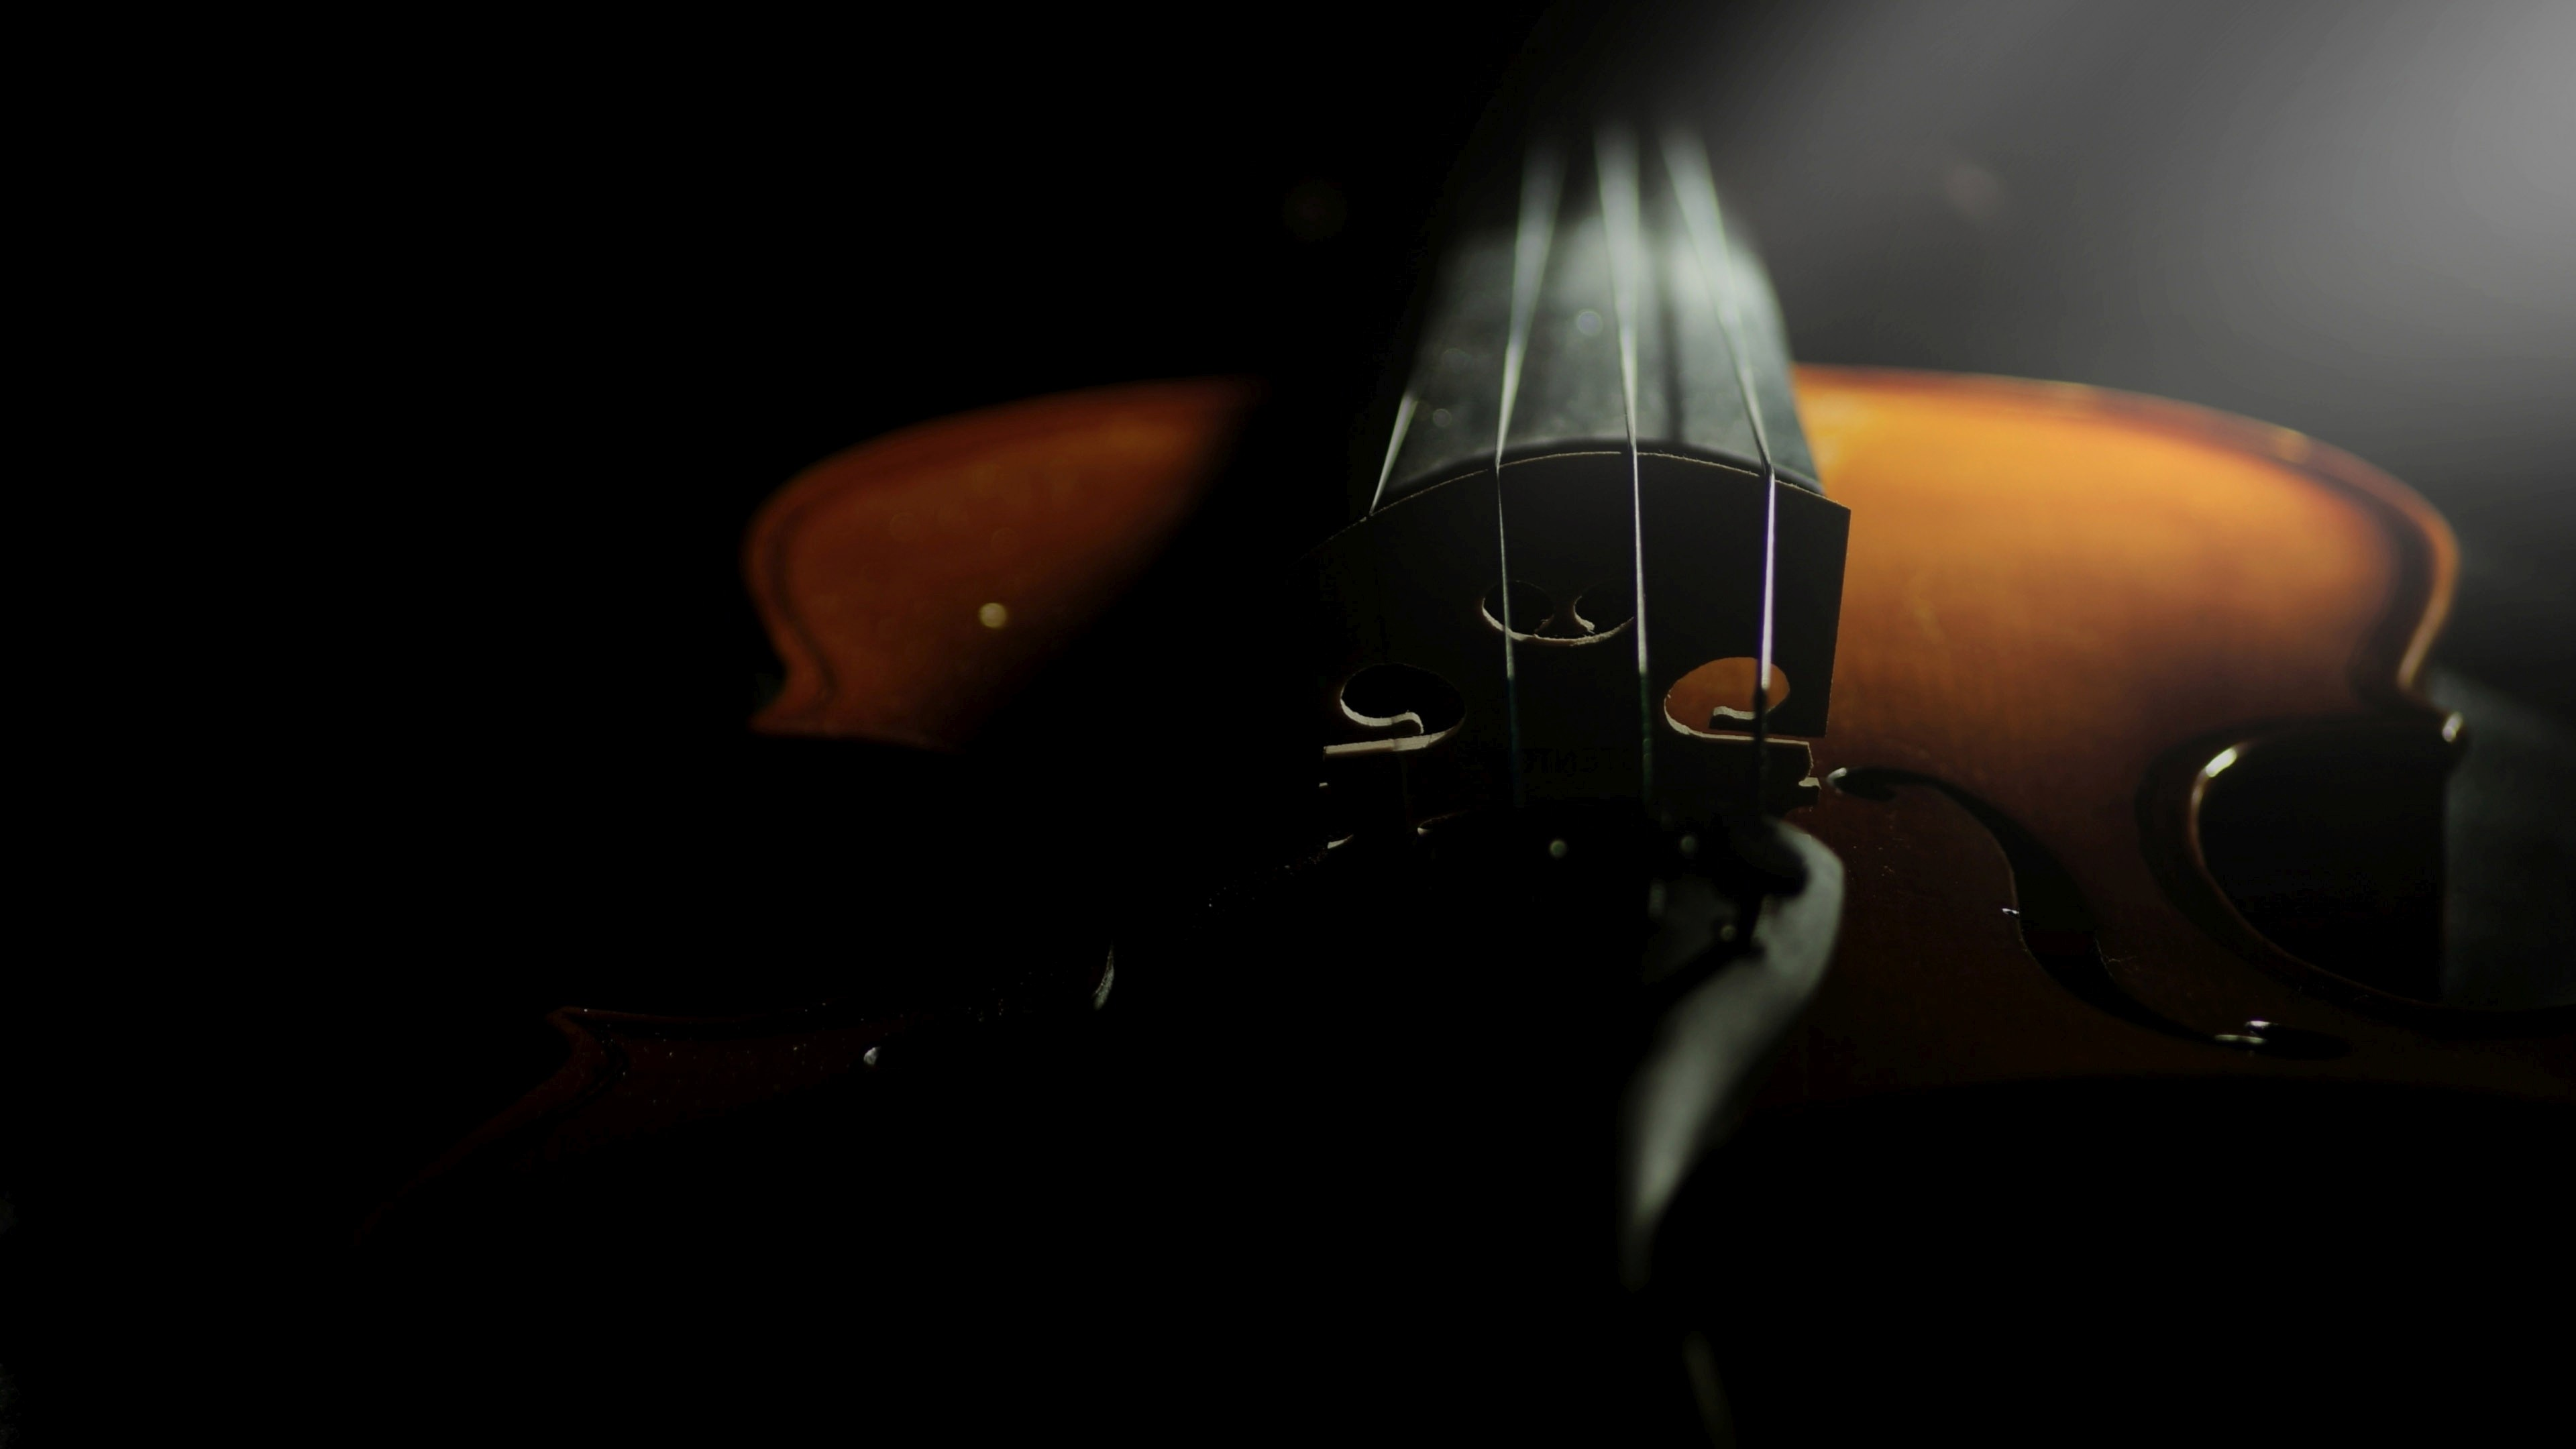 Res: 3840x2160, 92 Violin HD Wallpapers Backgrounds Wallpaper Abyss - HD Wallpapers